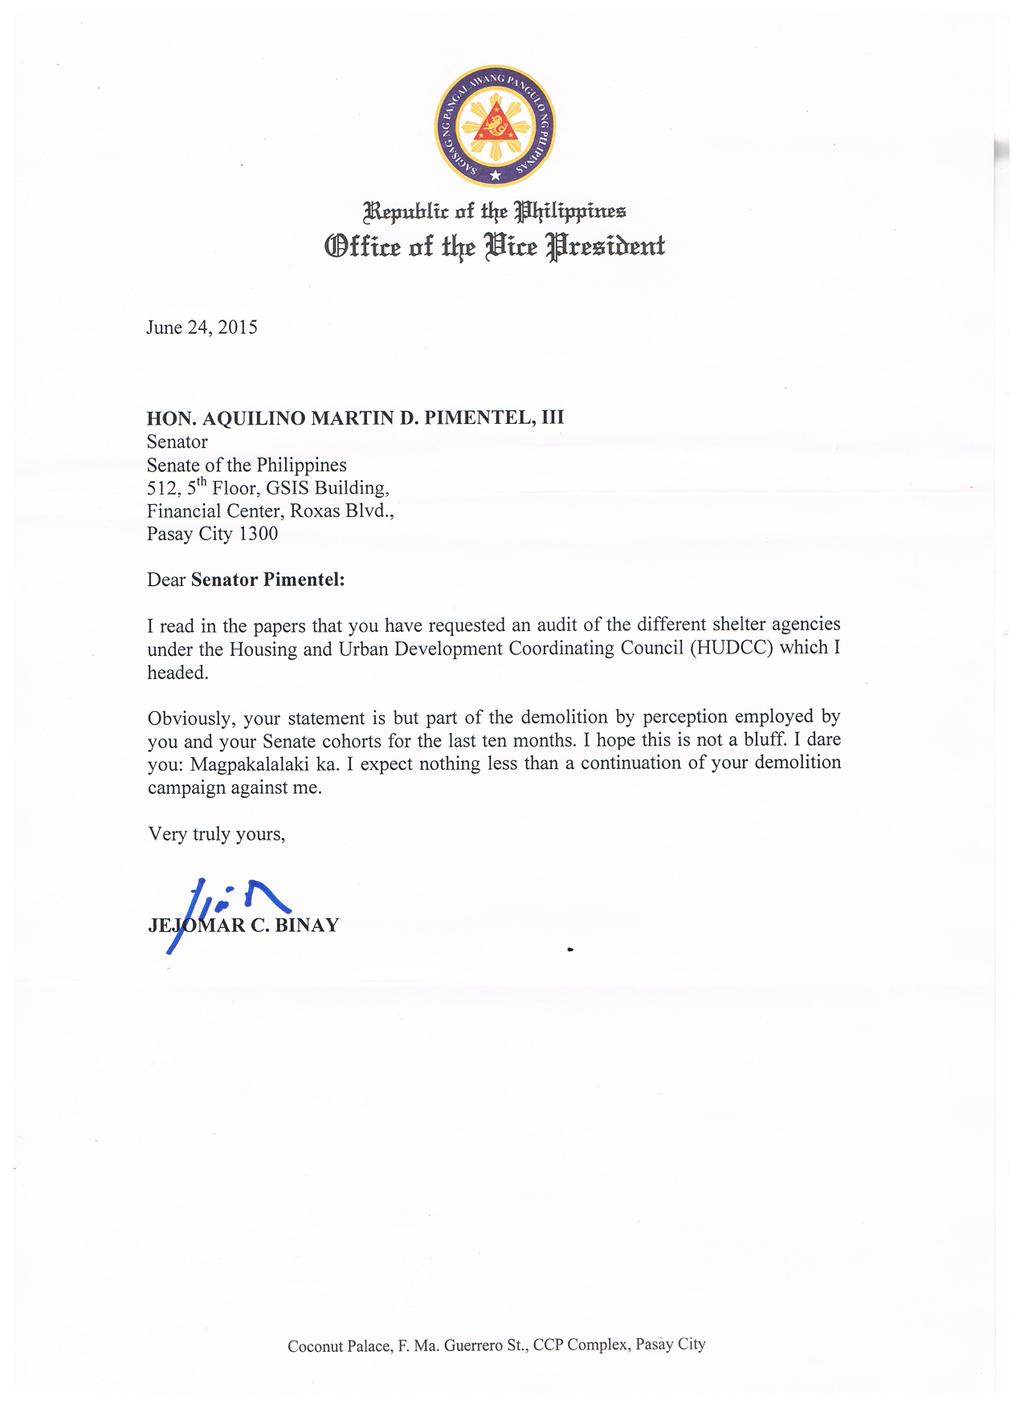 Look vp binays letter to sen koko pimentel taunting binay letter to pimentel ccuart Gallery